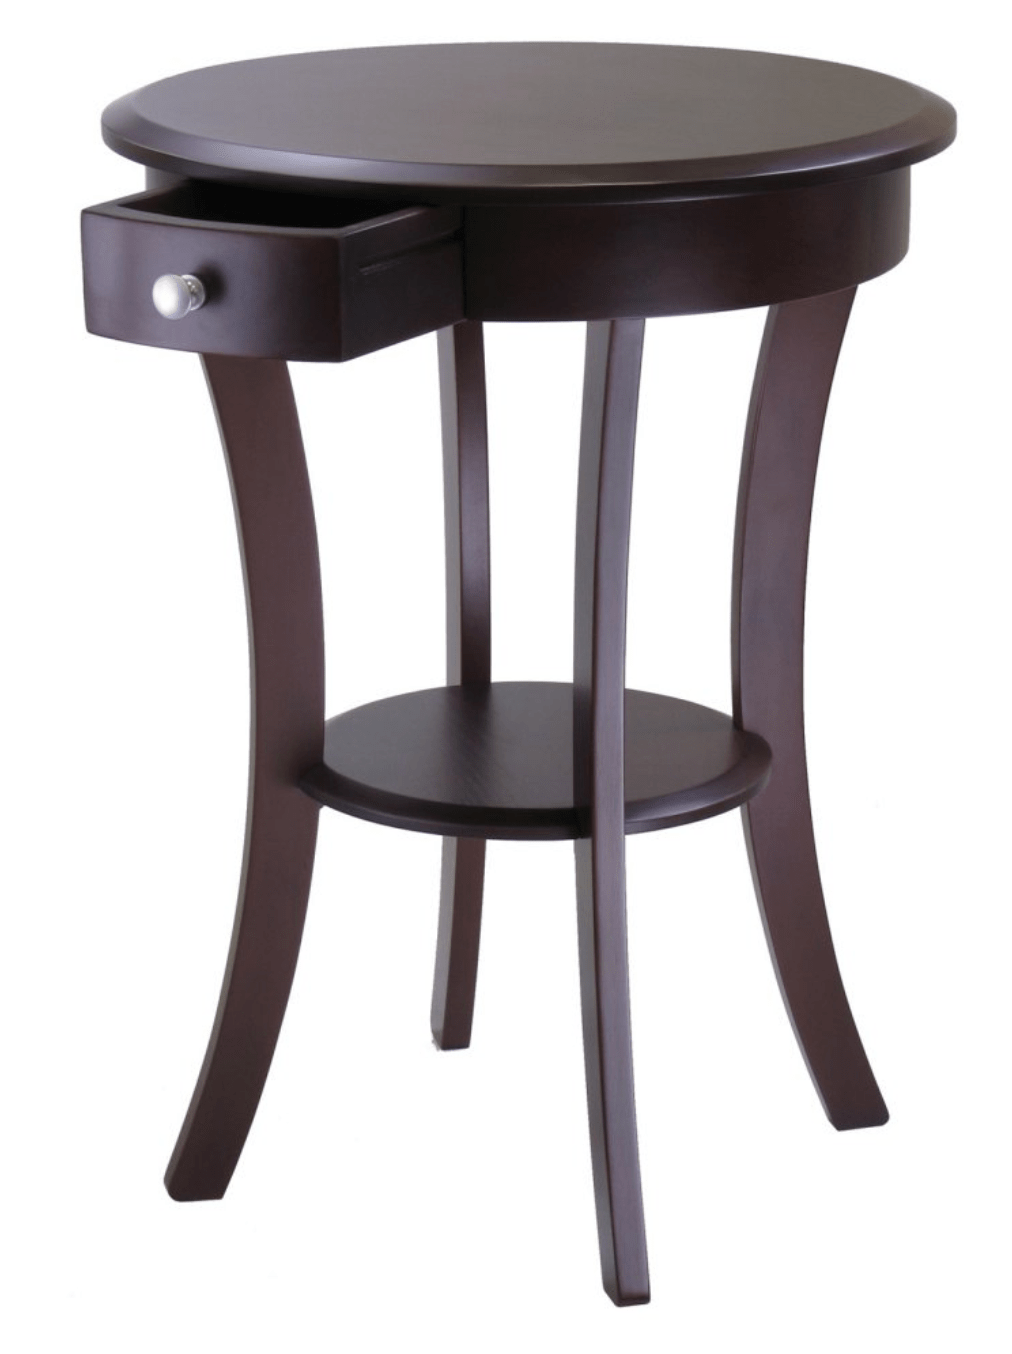 lovely small accent table for round wood min pedestal contemporary the bedroom brown entryway square wall clock side tables toronto kitchen dining room beautiful headboards black